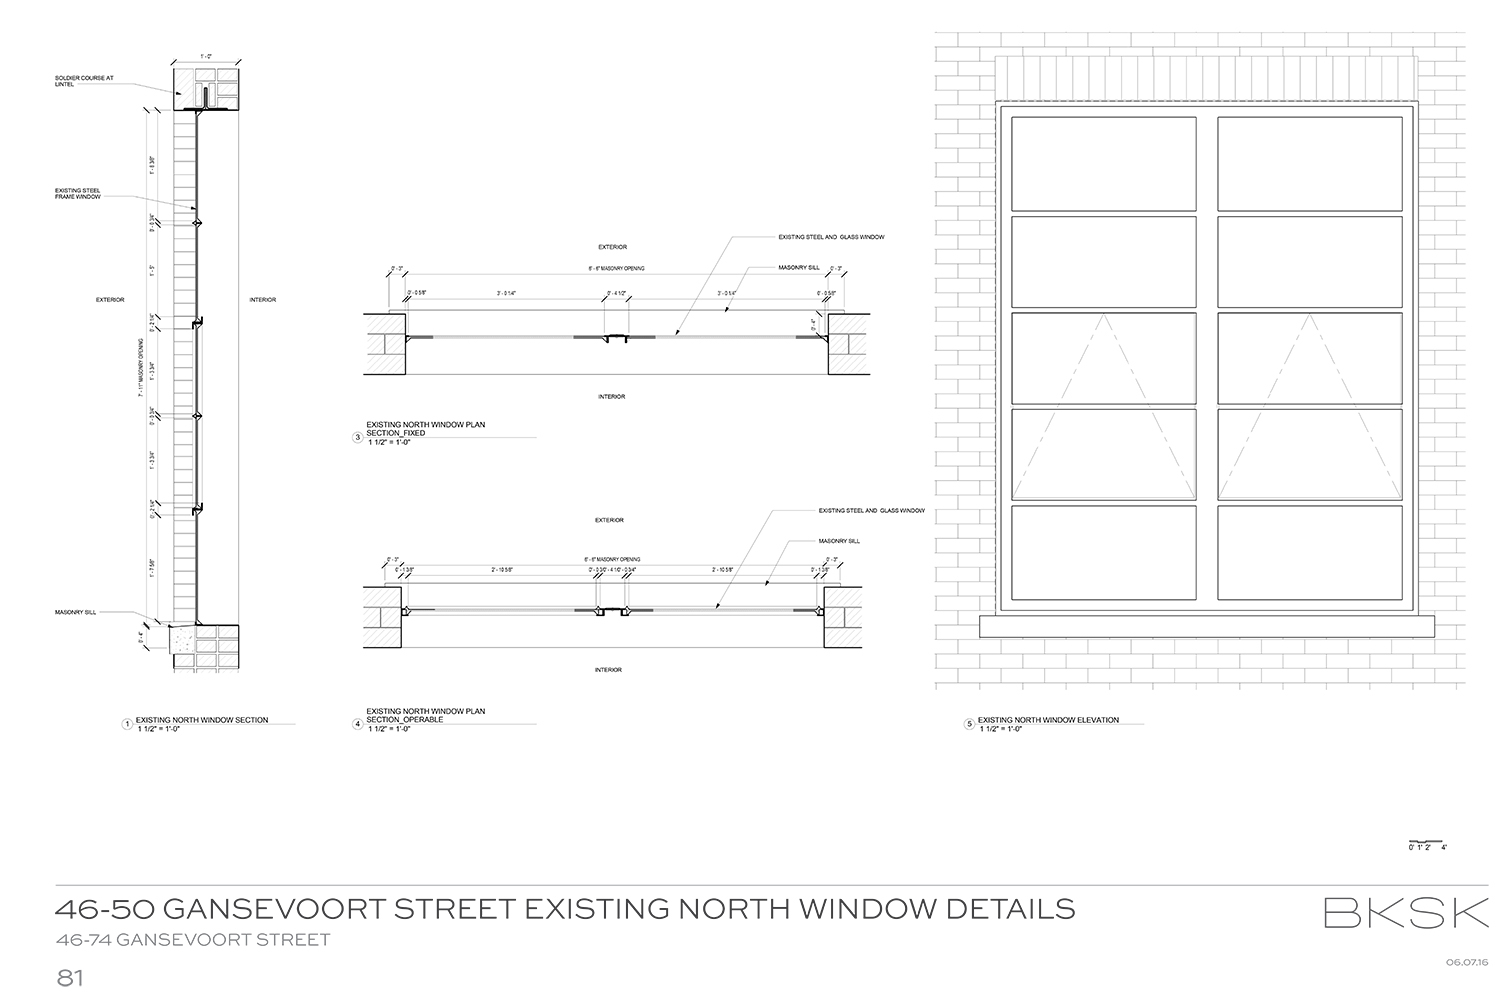 Gansevoort Market Plan landmarks approves redevelopment of gansevoort market block - new